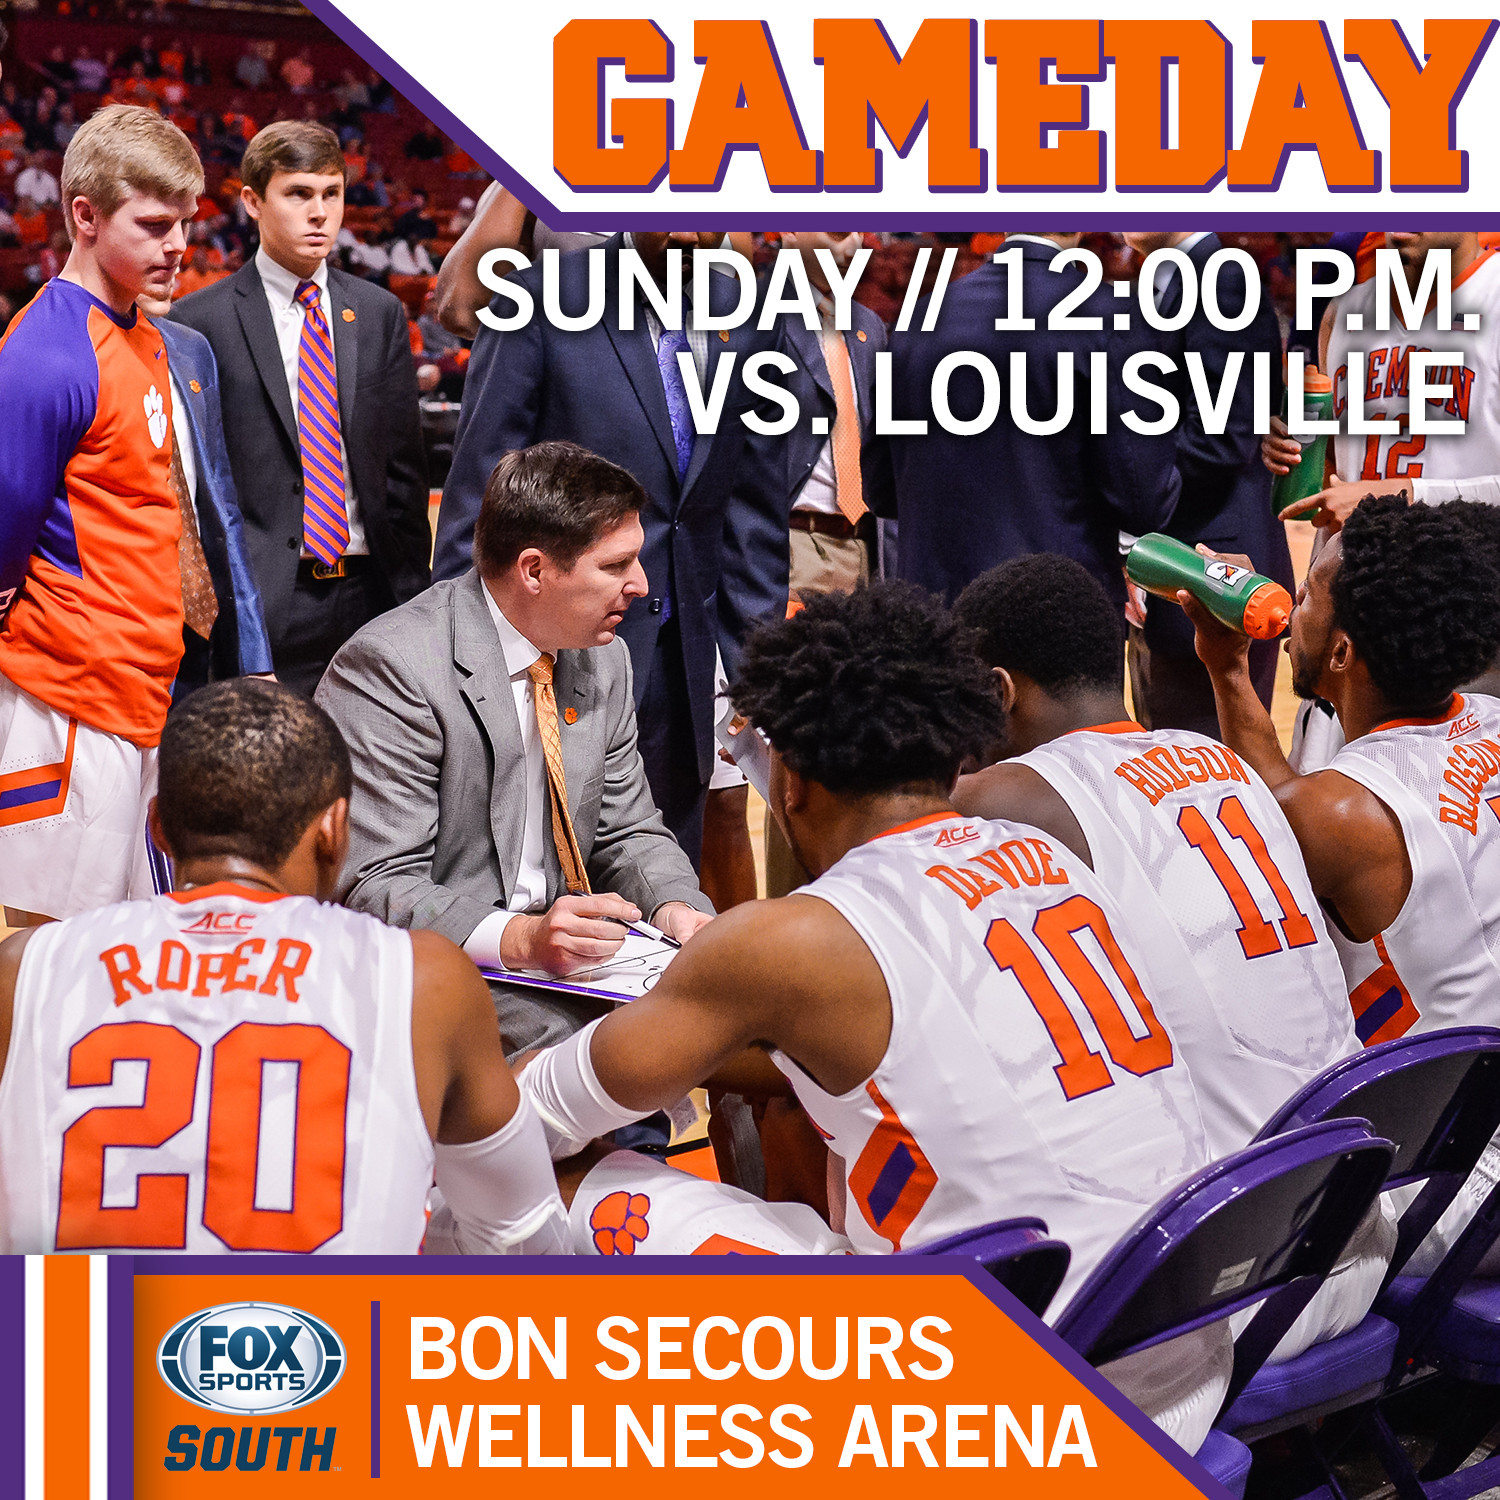 Clemson Takes on No. 16 Louisville